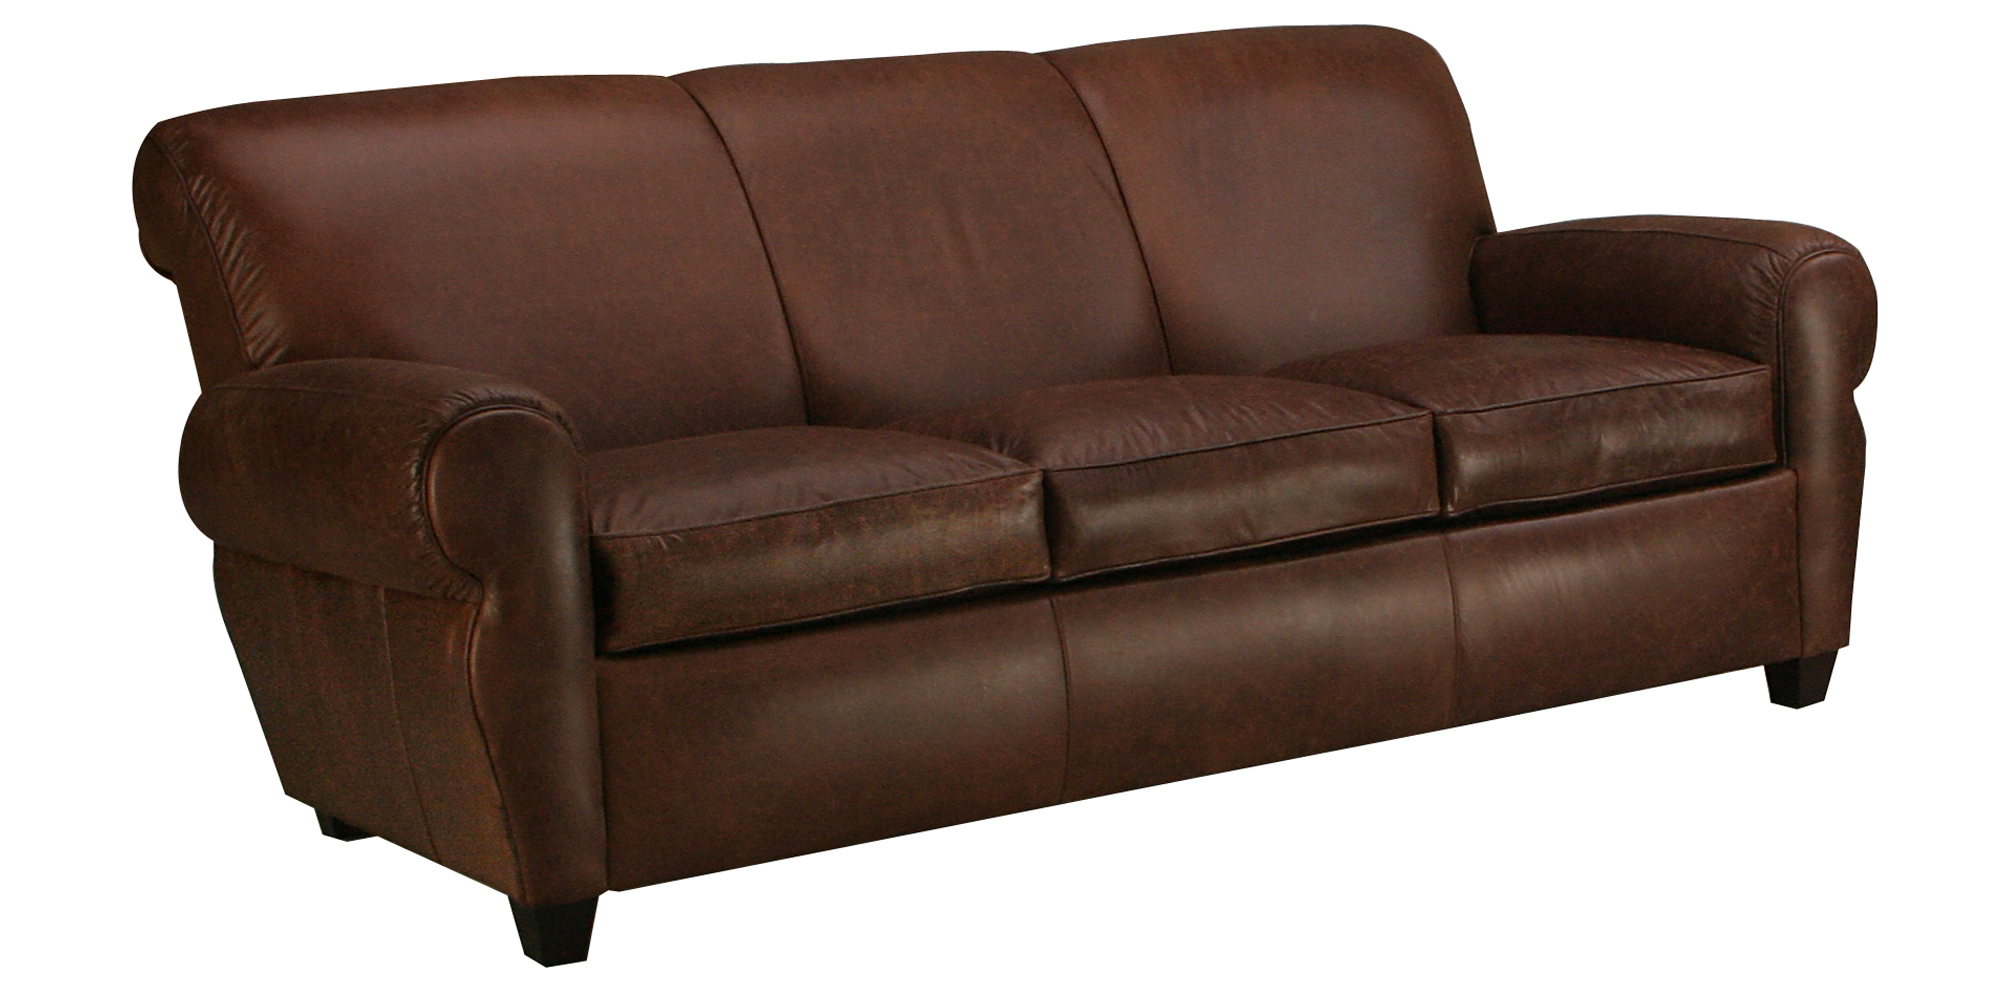 Leather Sofas Made In The Usa Sofa Menzilperde Net